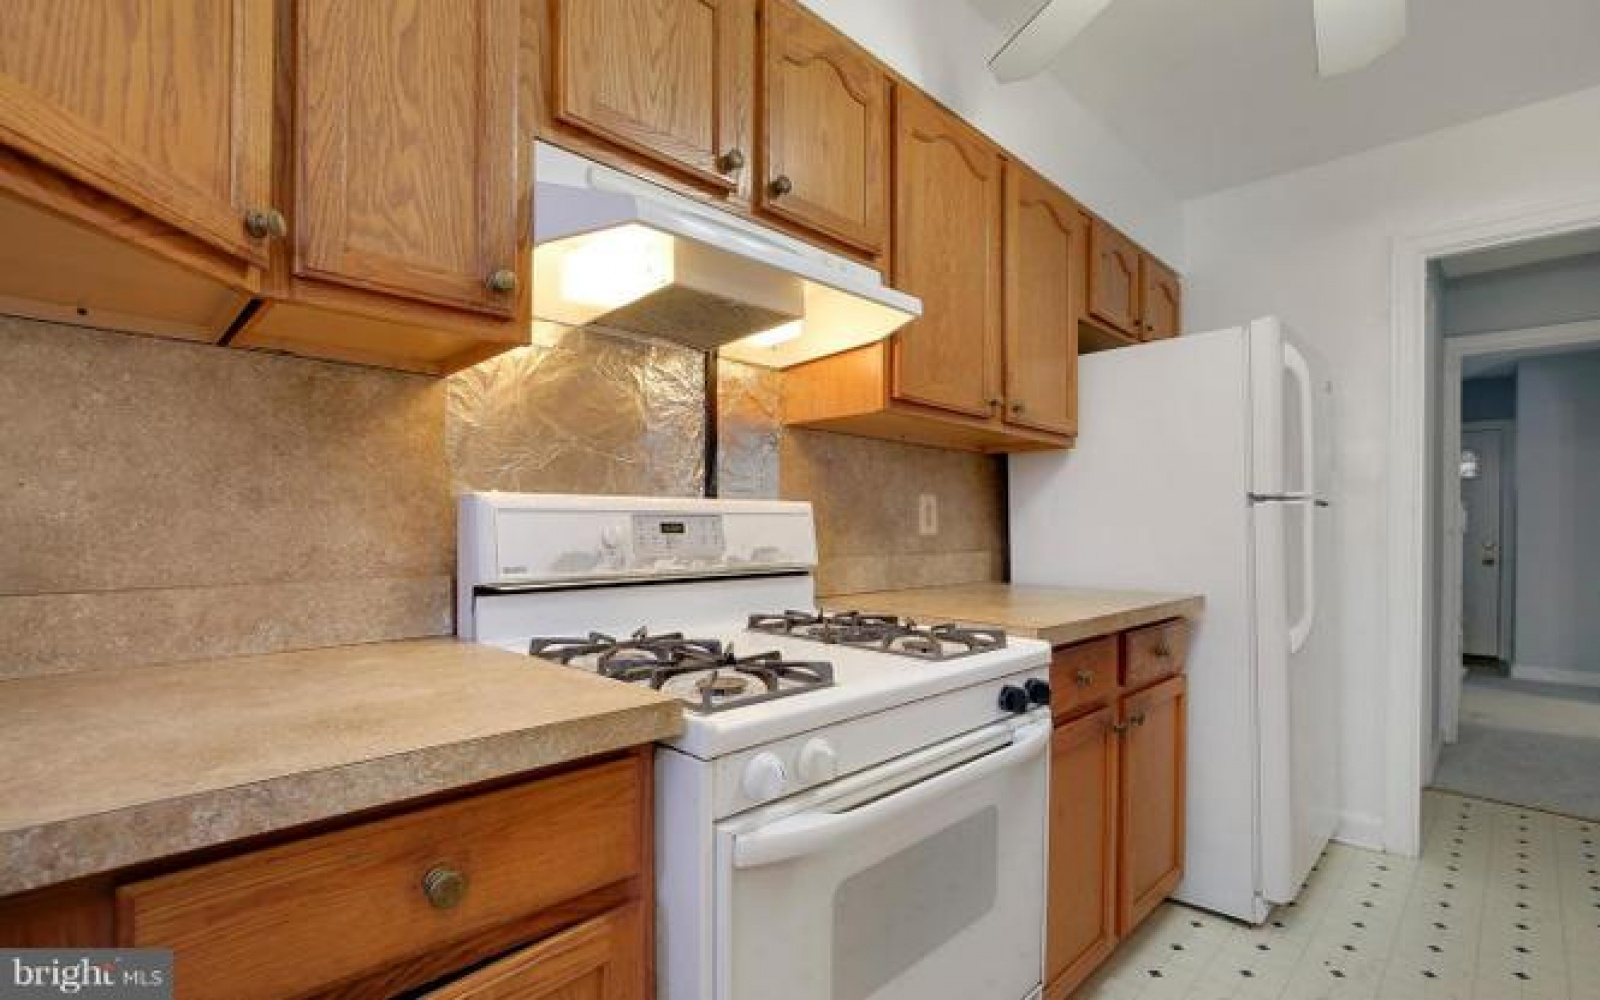 District Of Columbia,5 Bedrooms Bedrooms,2 BathroomsBathrooms,House,1036